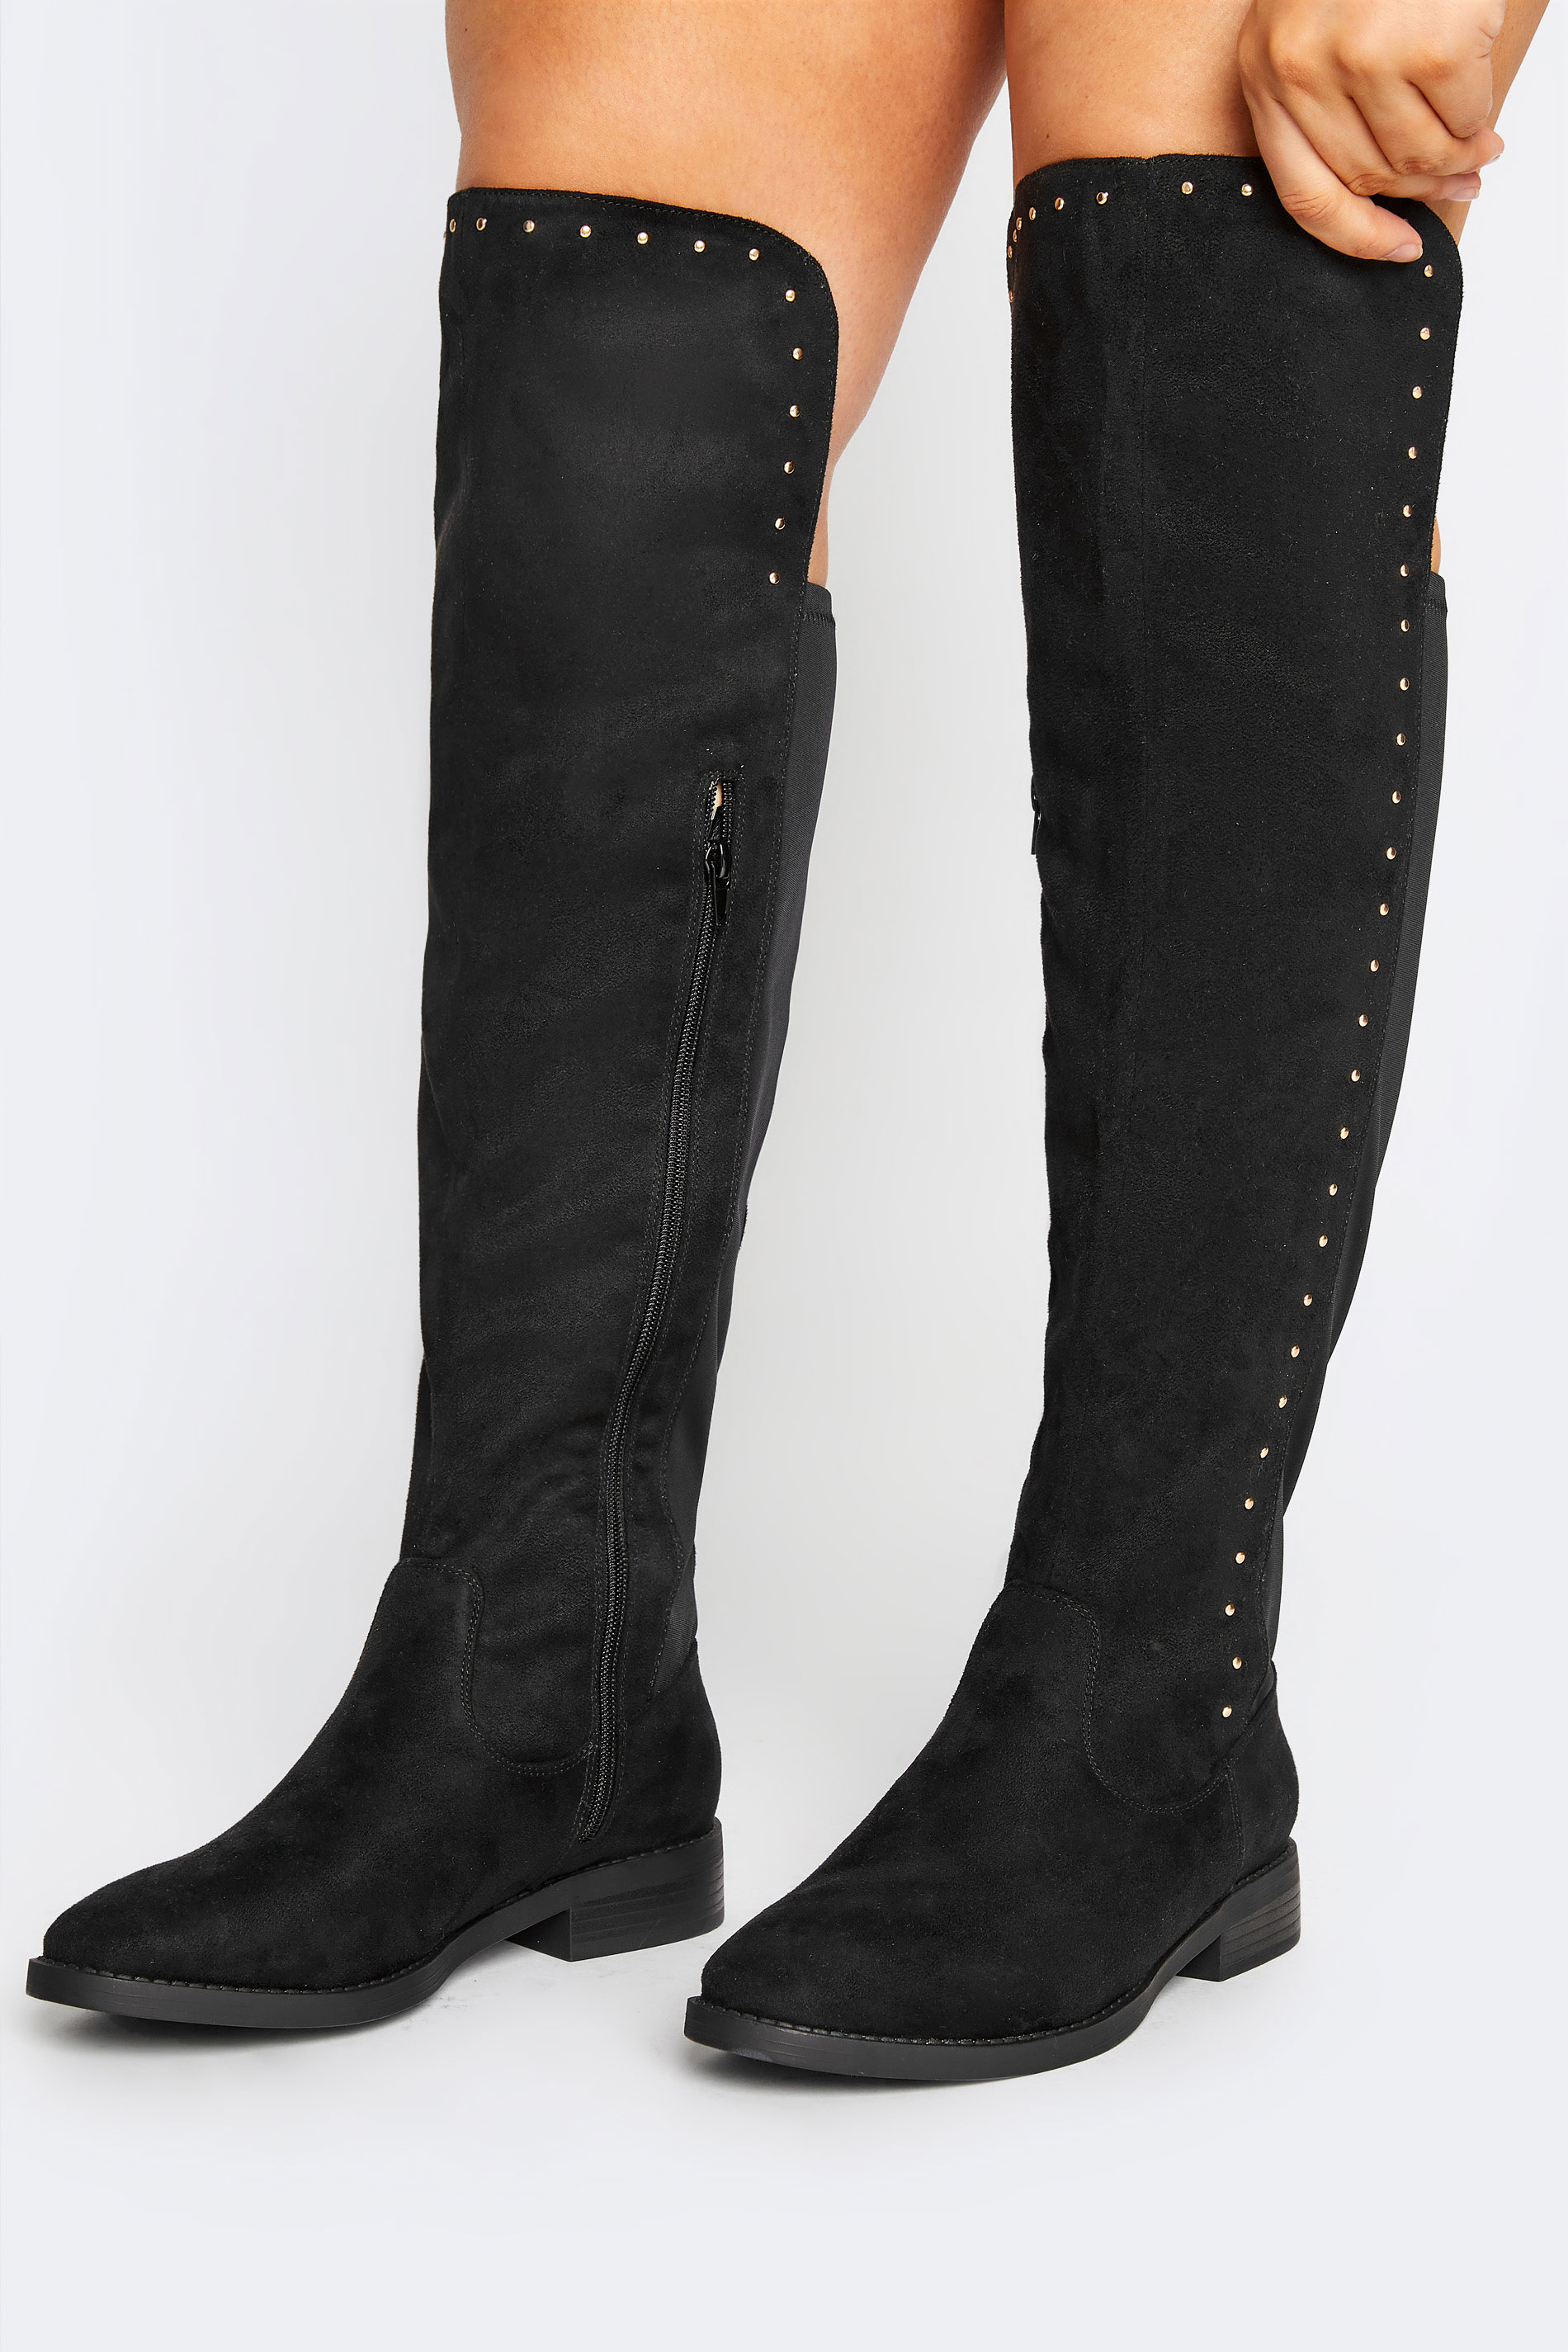 LIMITED COLLECTION Black Stud Over The Knee Boots In Extra Wide Fit_M.jpg